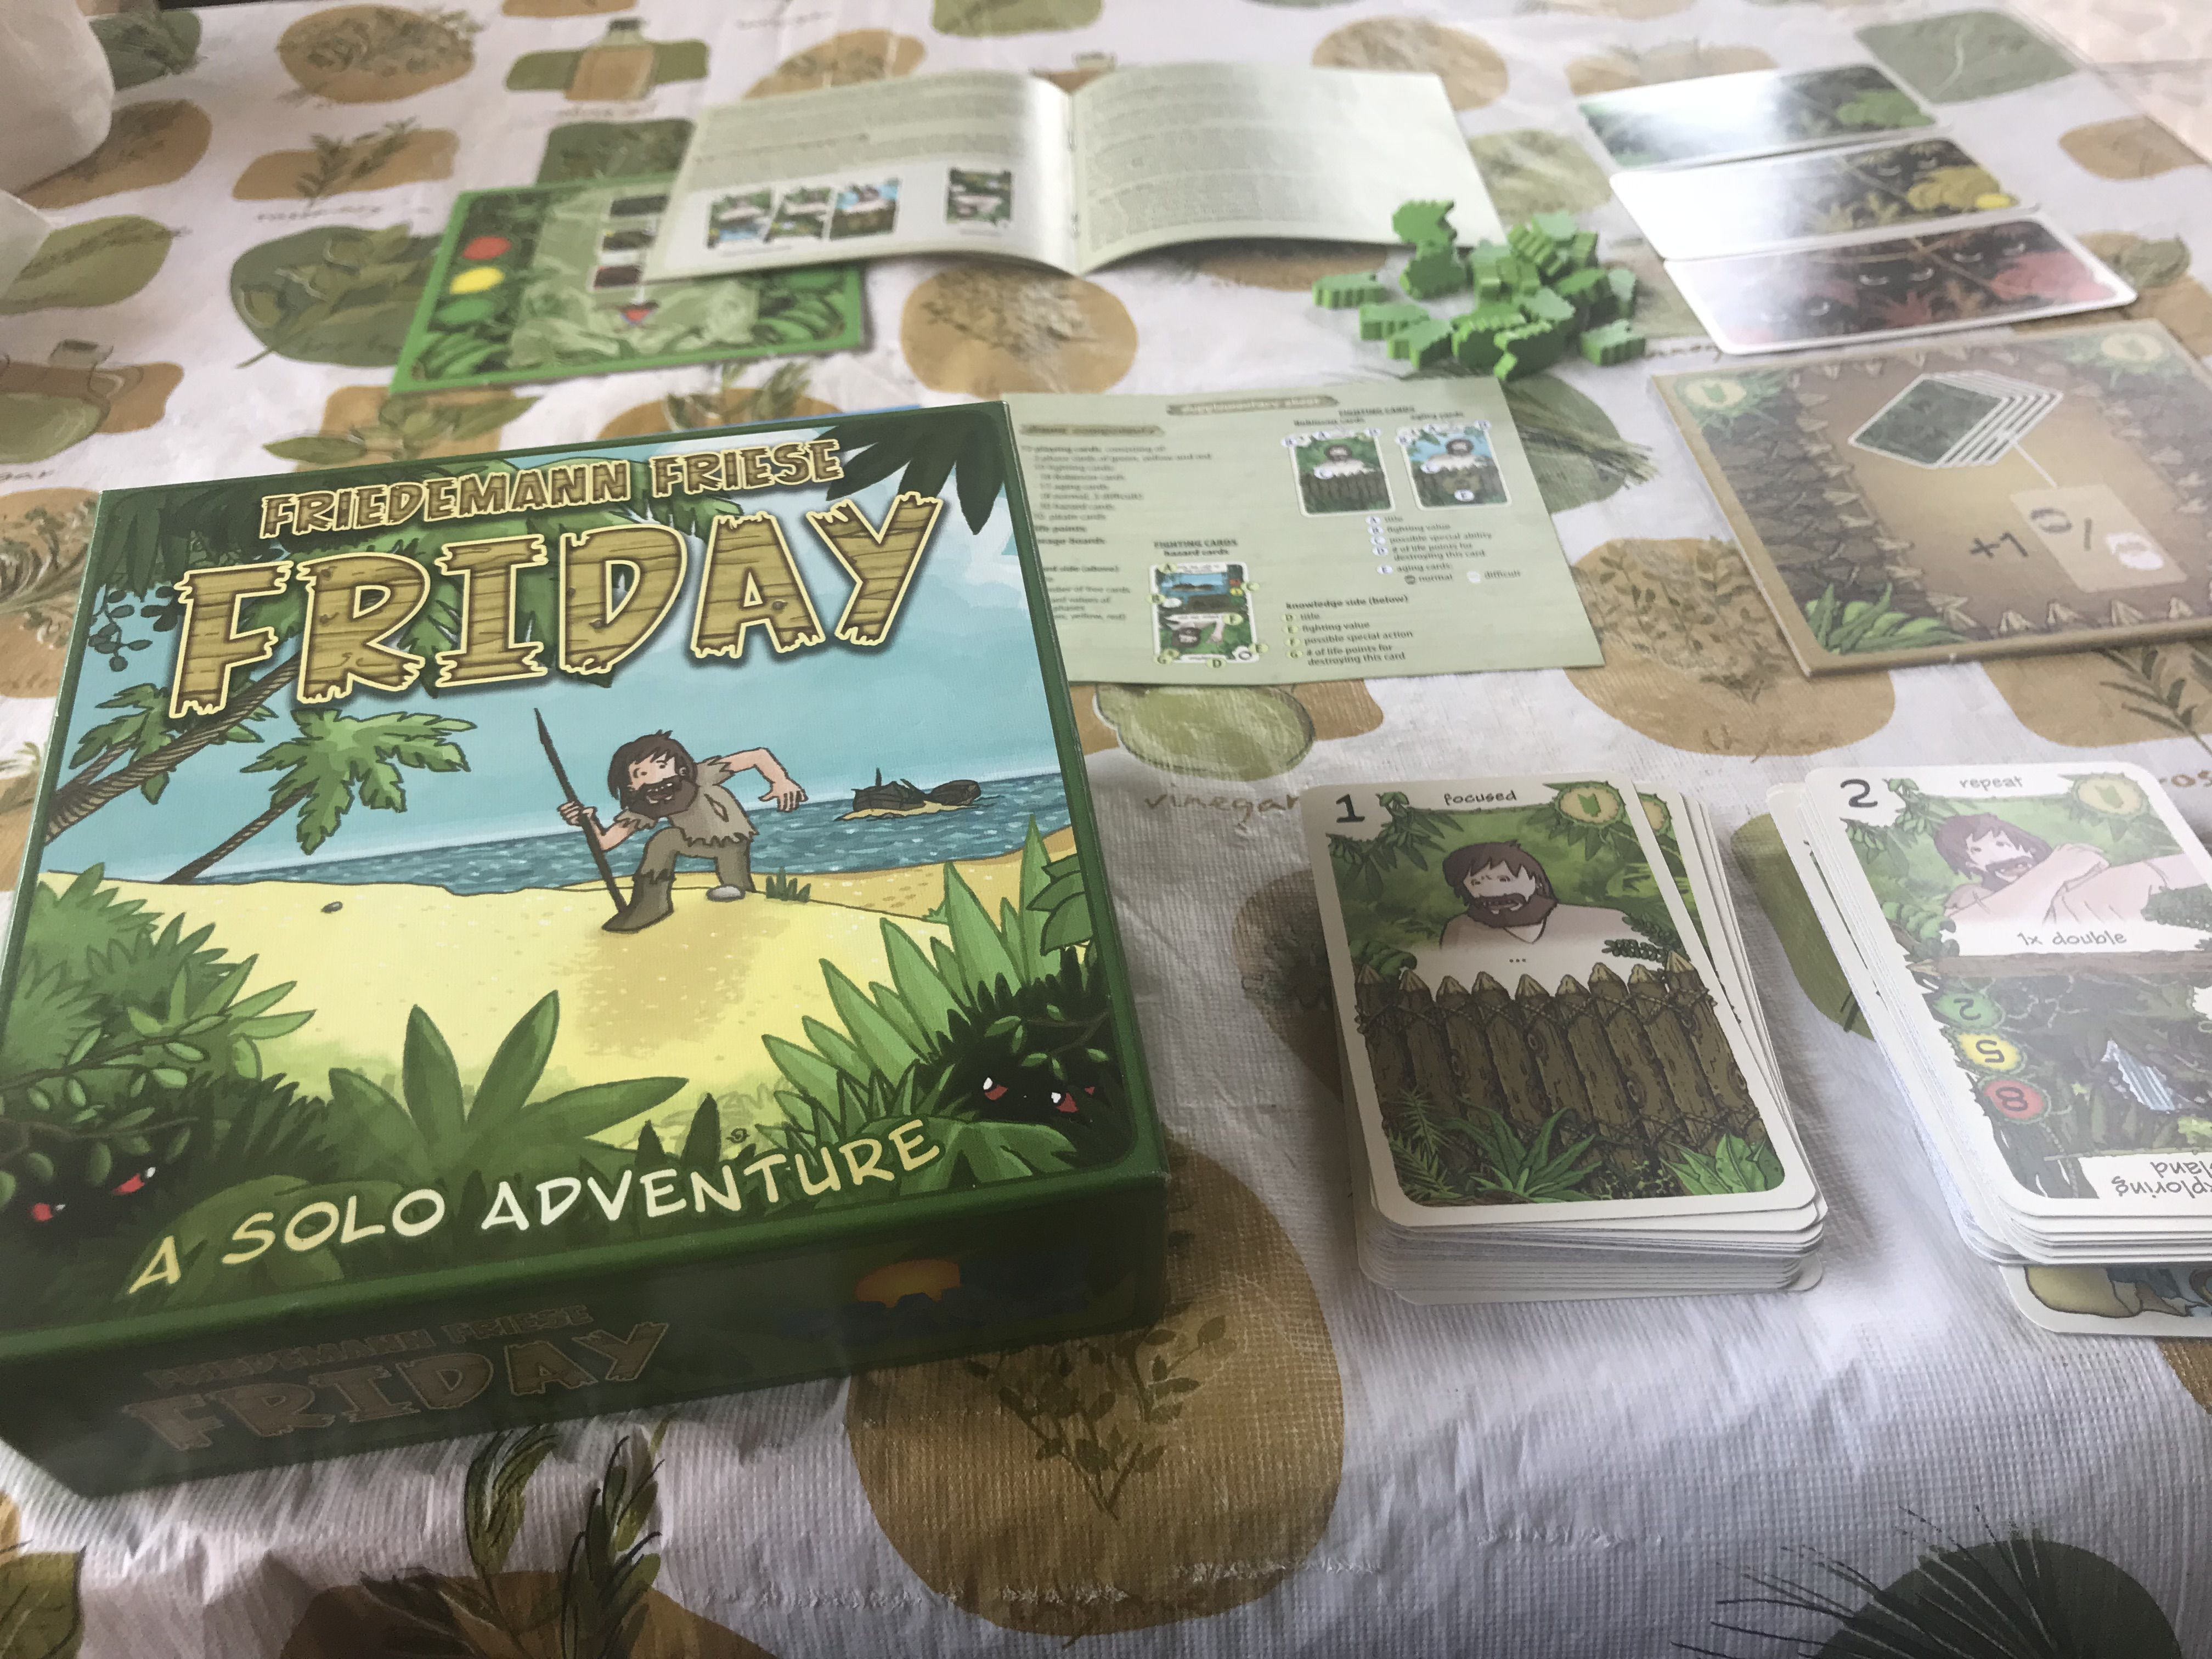 Friday Card Game